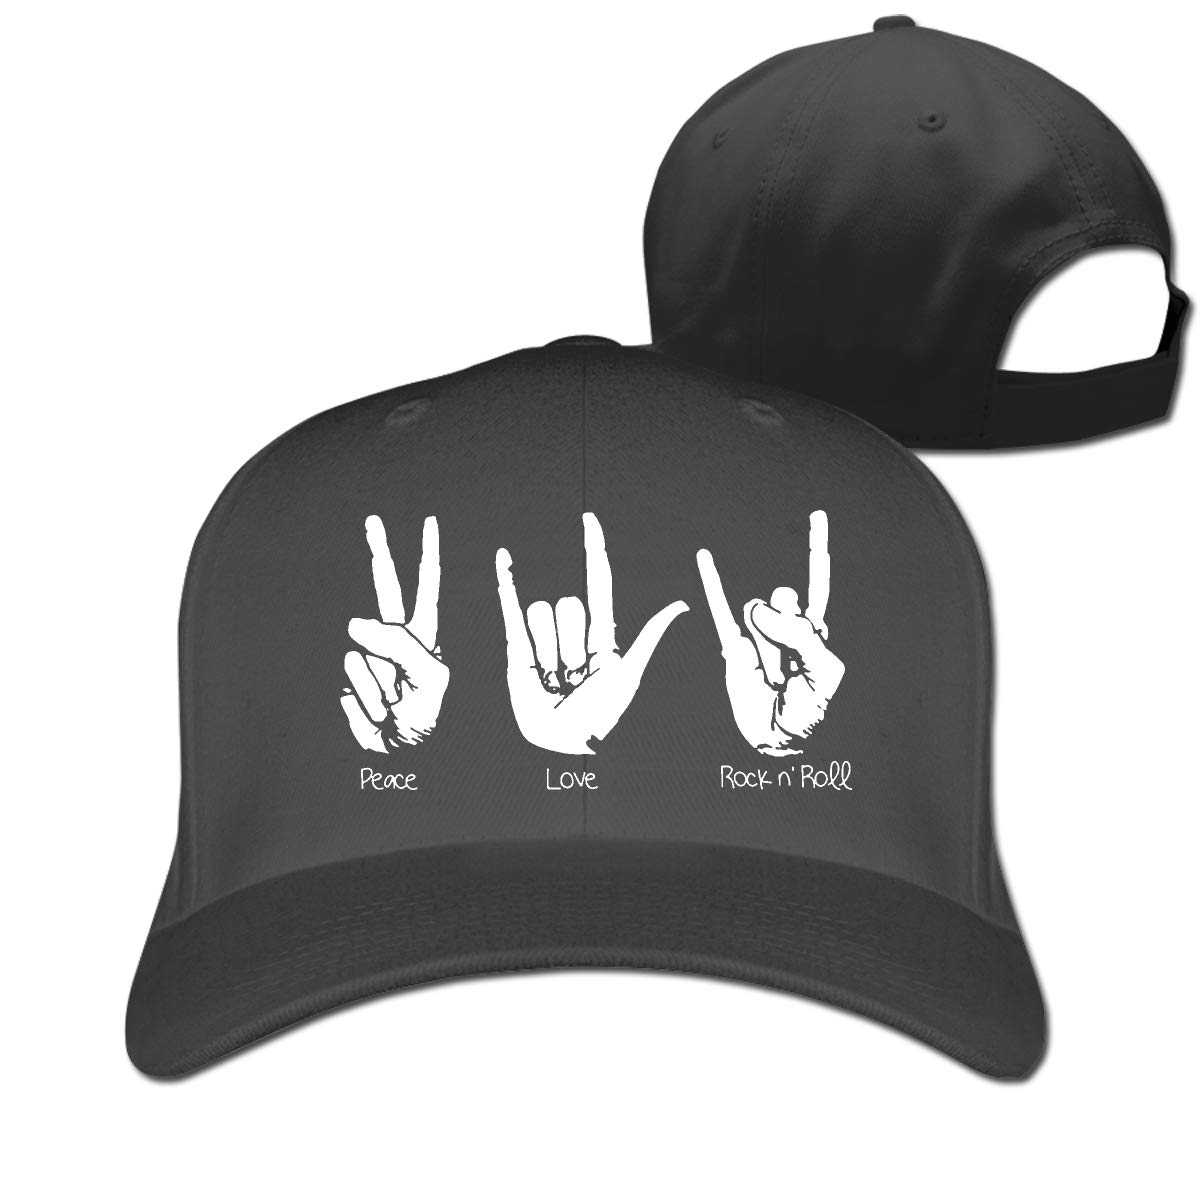 Peace Love and Rock and Roll Classic Adjustable Cotton Baseball Caps Trucker Driver Hat Outdoor Cap Fitted Hats Dad Hat Black